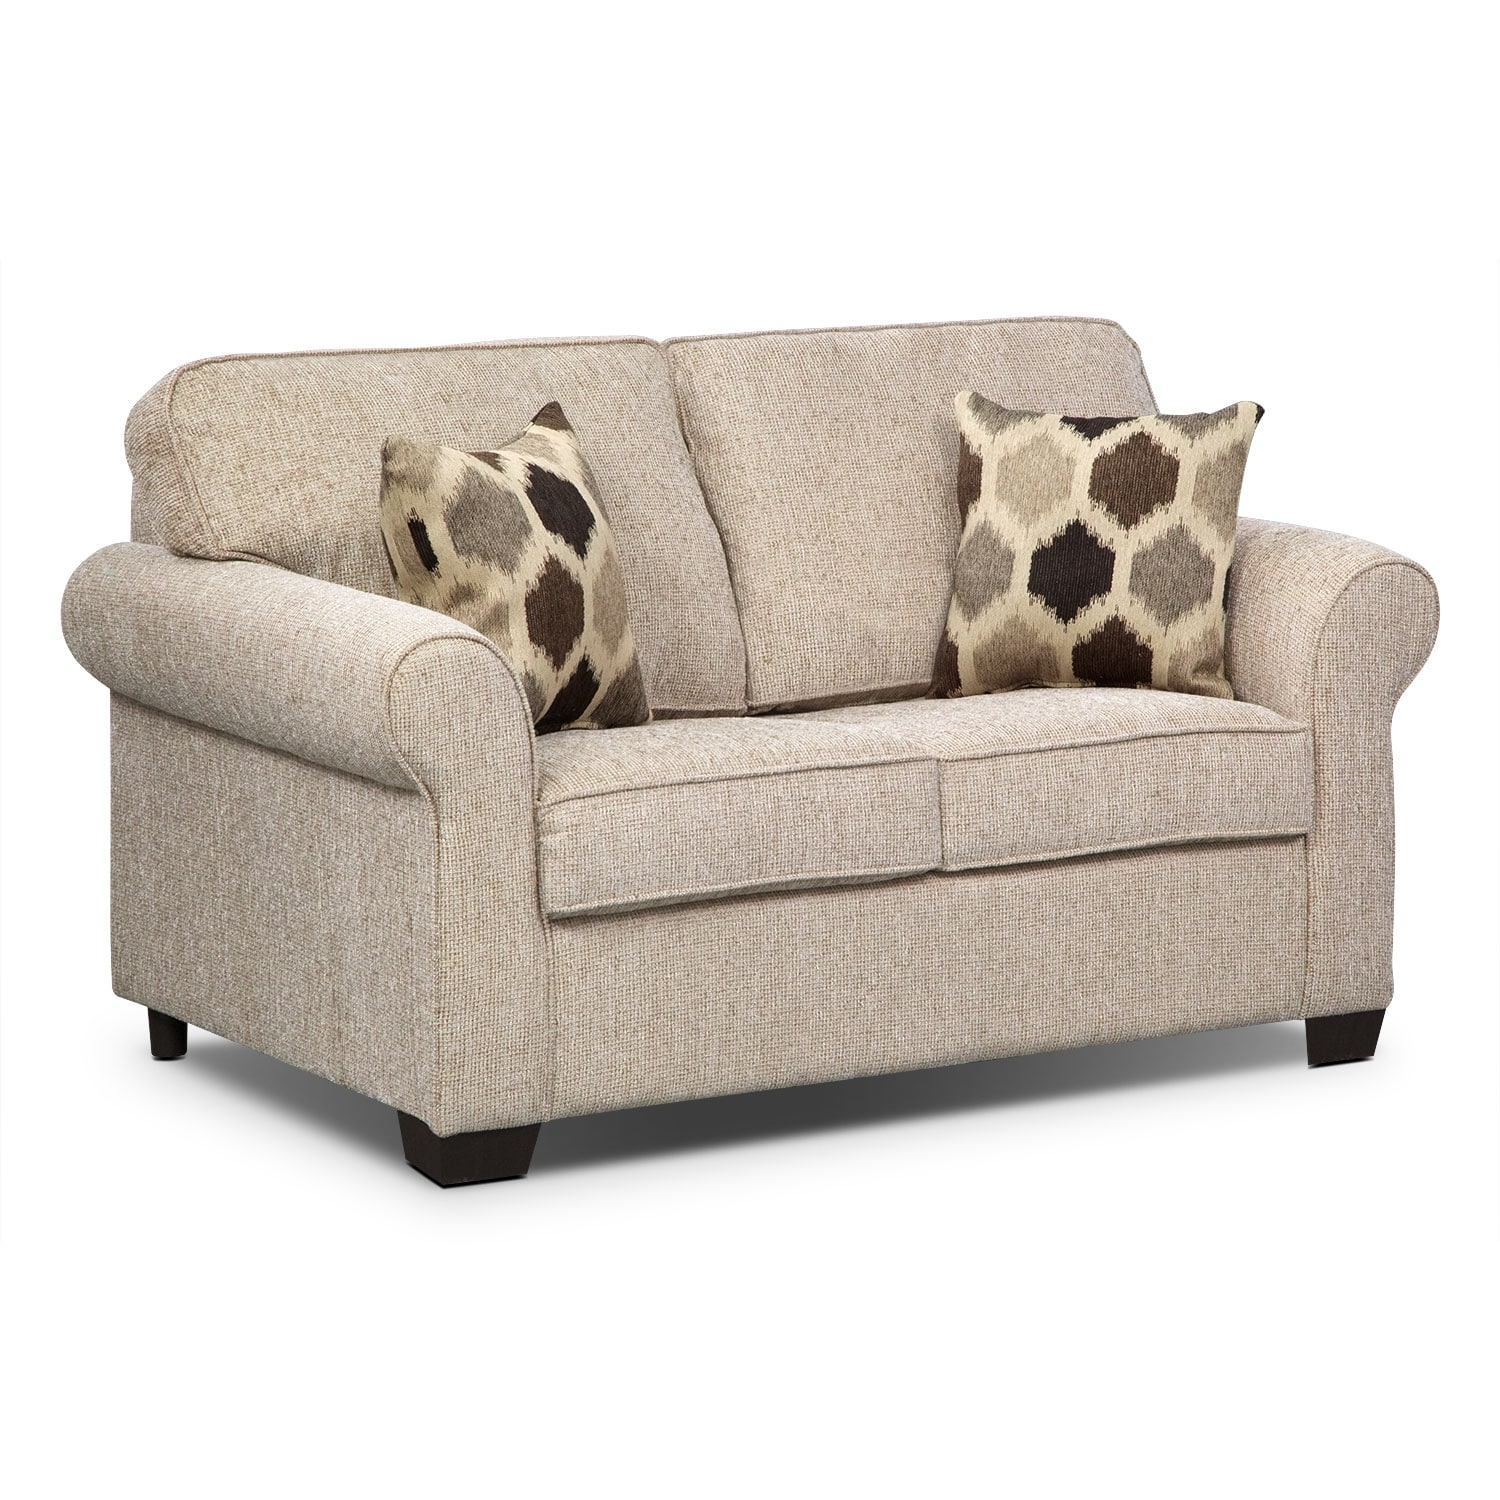 Fletcher Twin Memory Foam Sleeper Sofa   Beige By Factory Outlet